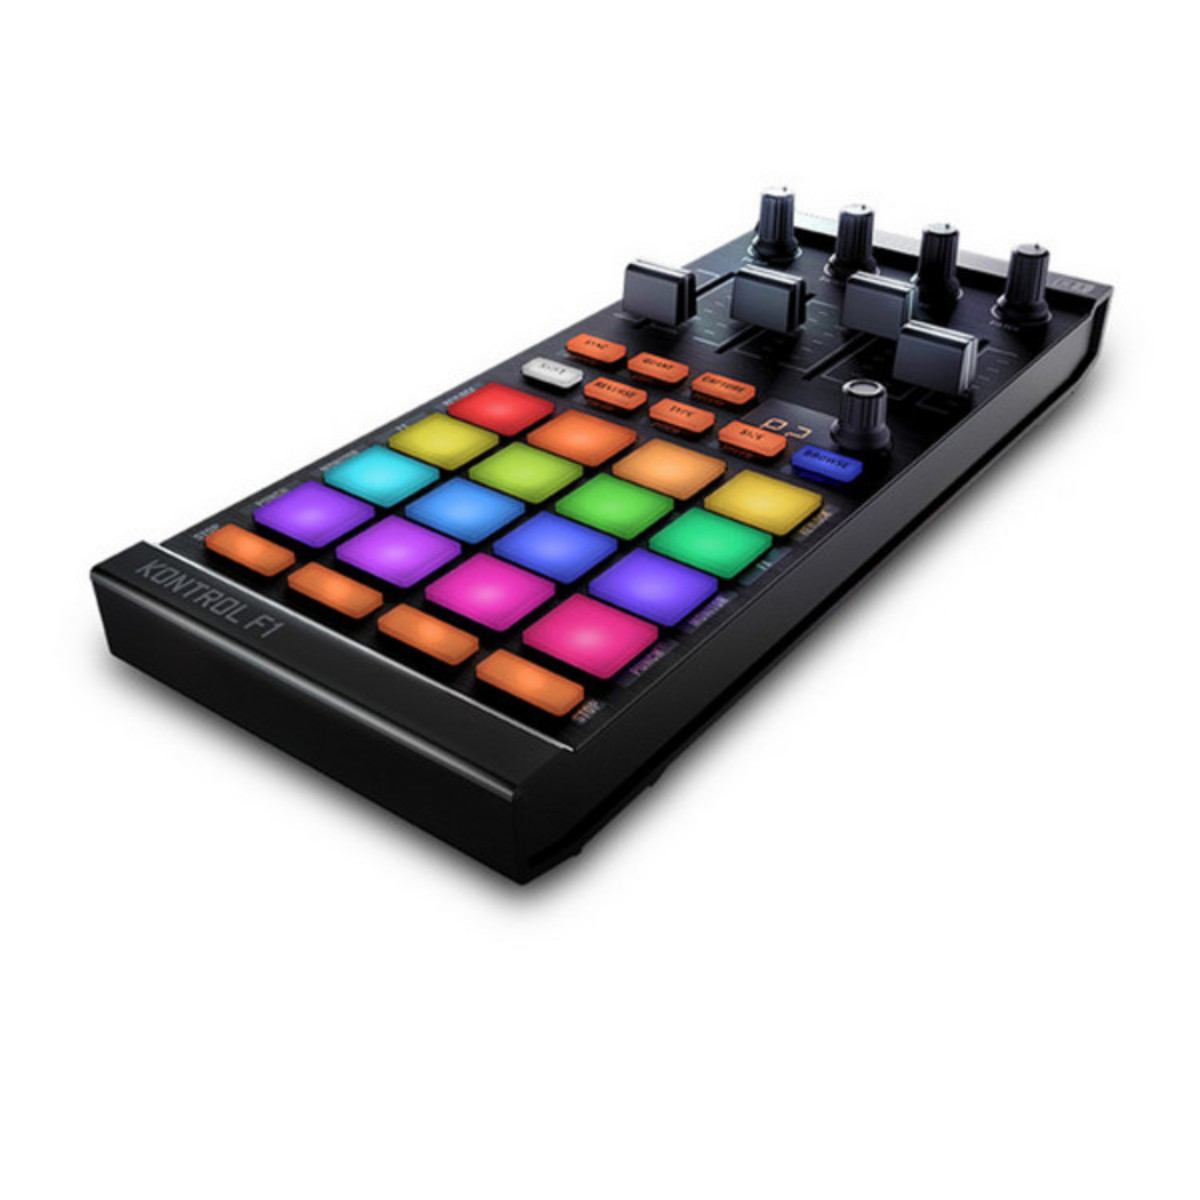 native instruments traktor kontrol f1 dj controller stand at. Black Bedroom Furniture Sets. Home Design Ideas